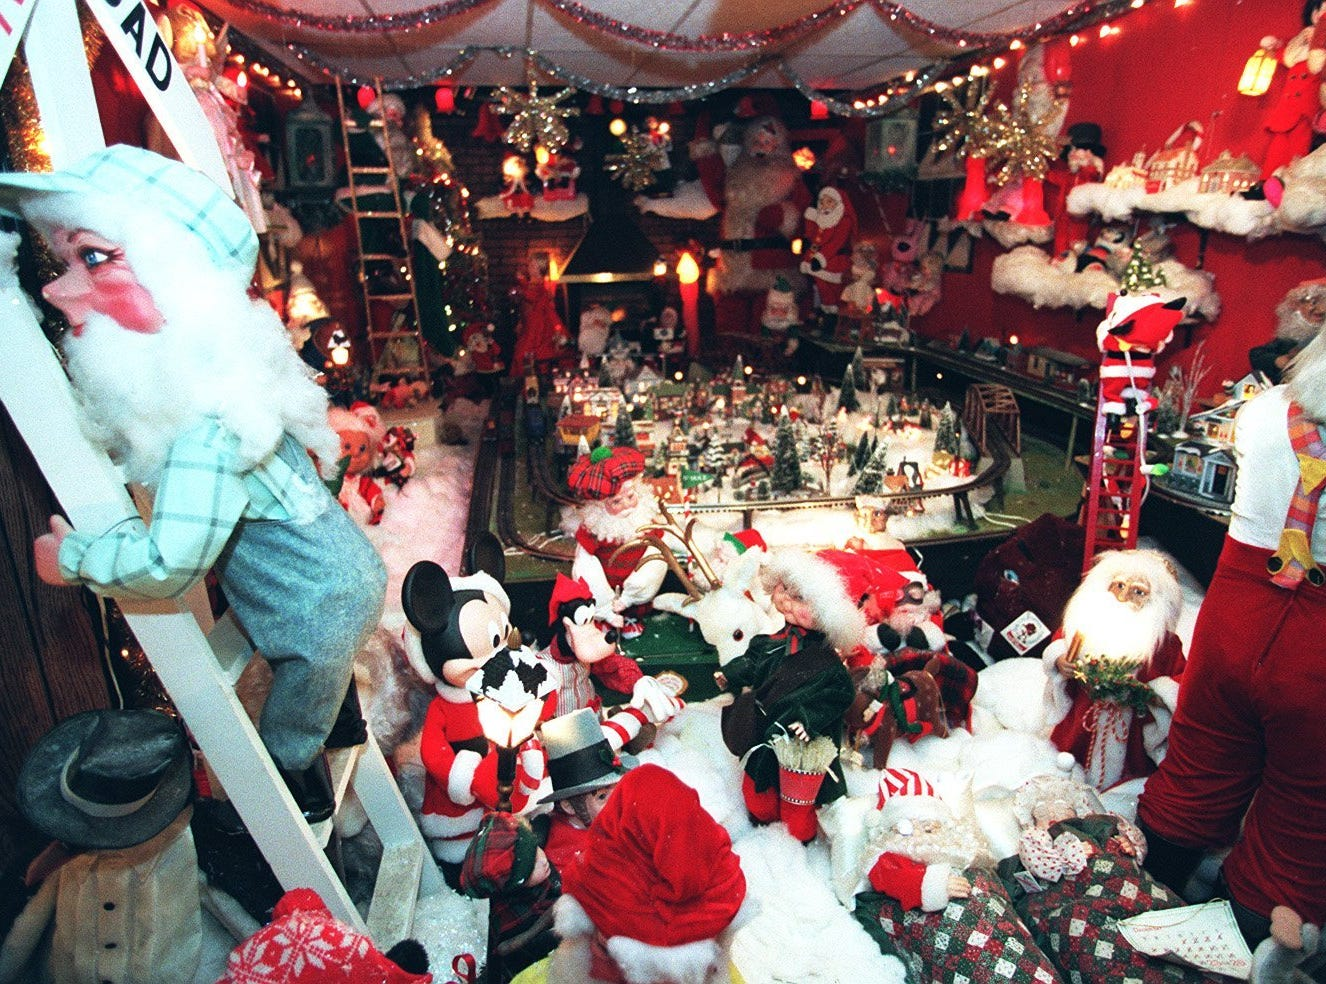 The display of automated figuresin Santa's Workshop at Roy Dixons home was a popular stop for families.